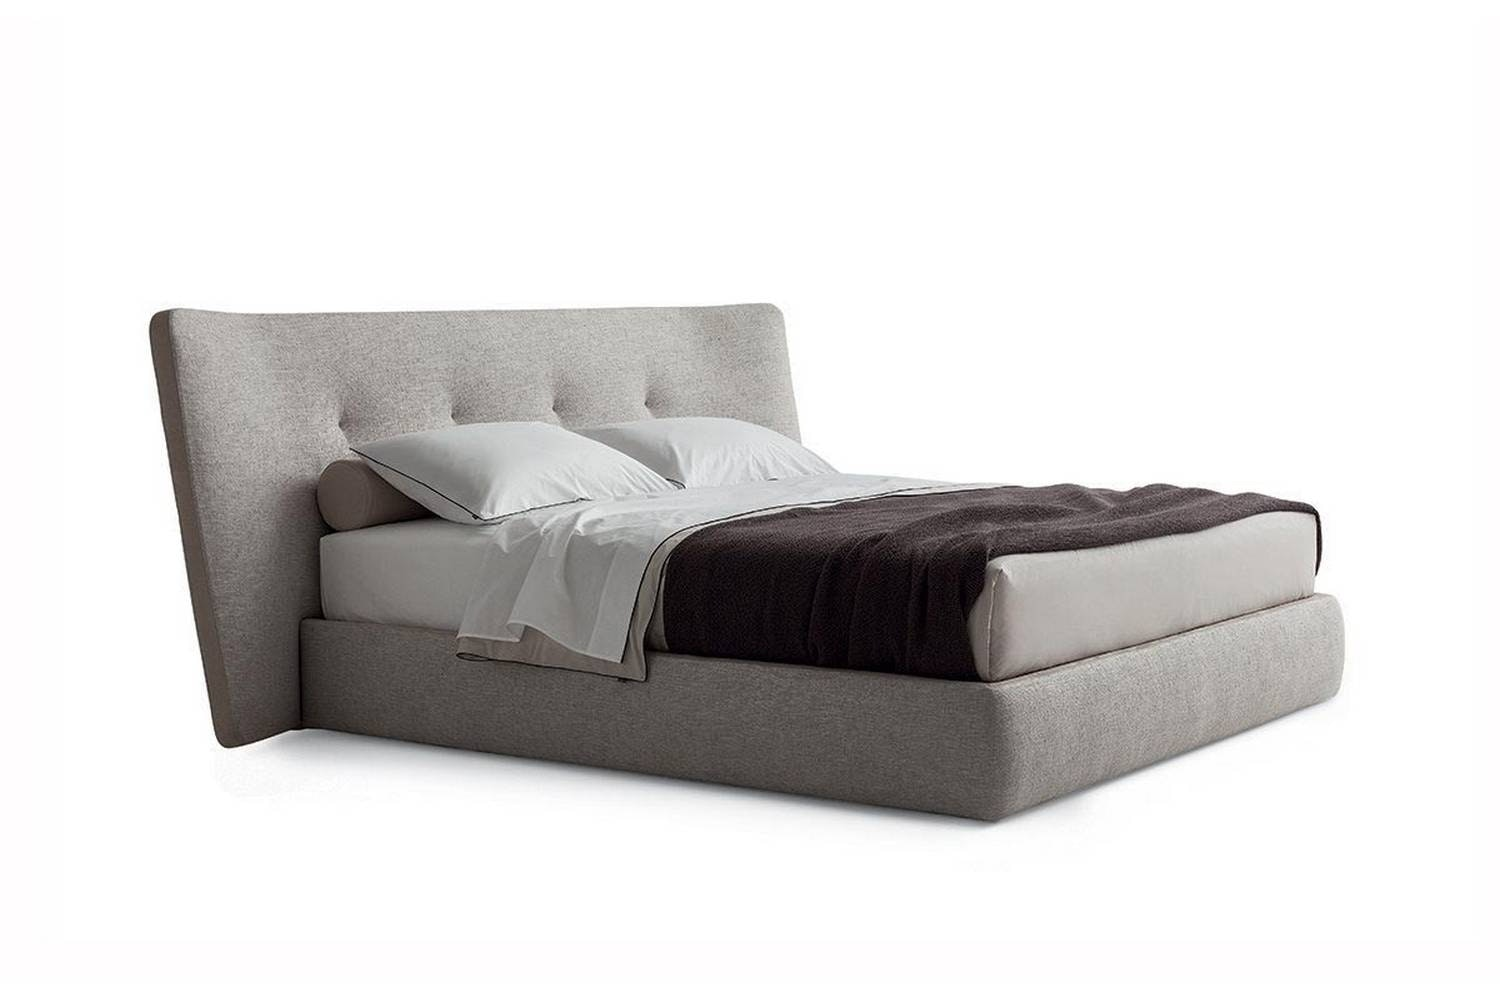 Rever Bed by Rodolfo Dordoni for Poliform